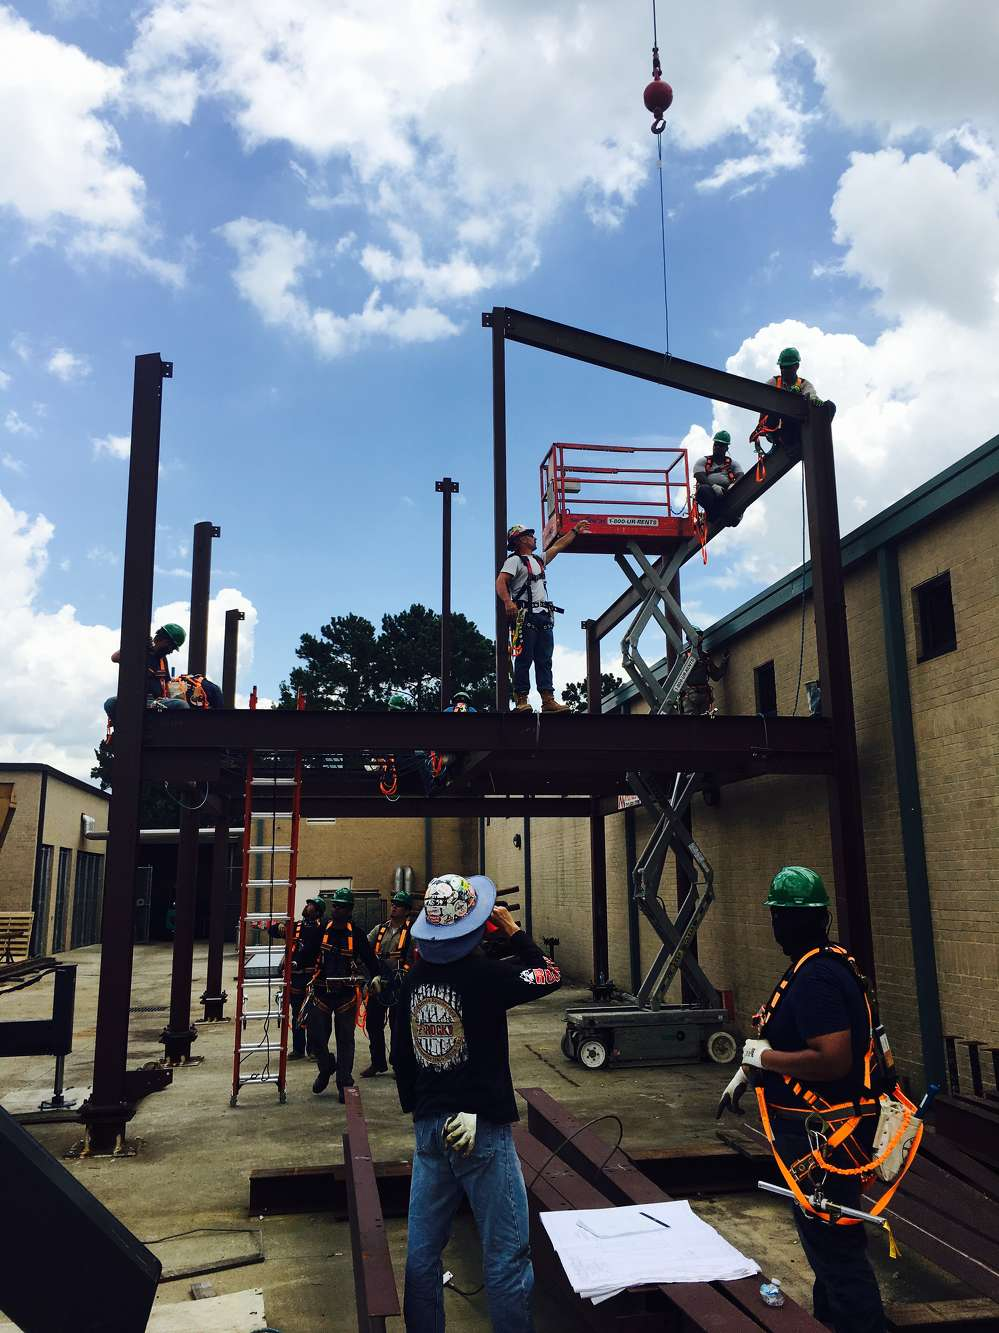 A training tower provides real-world experience for learning ironworking skills in a safe, controlled environment.